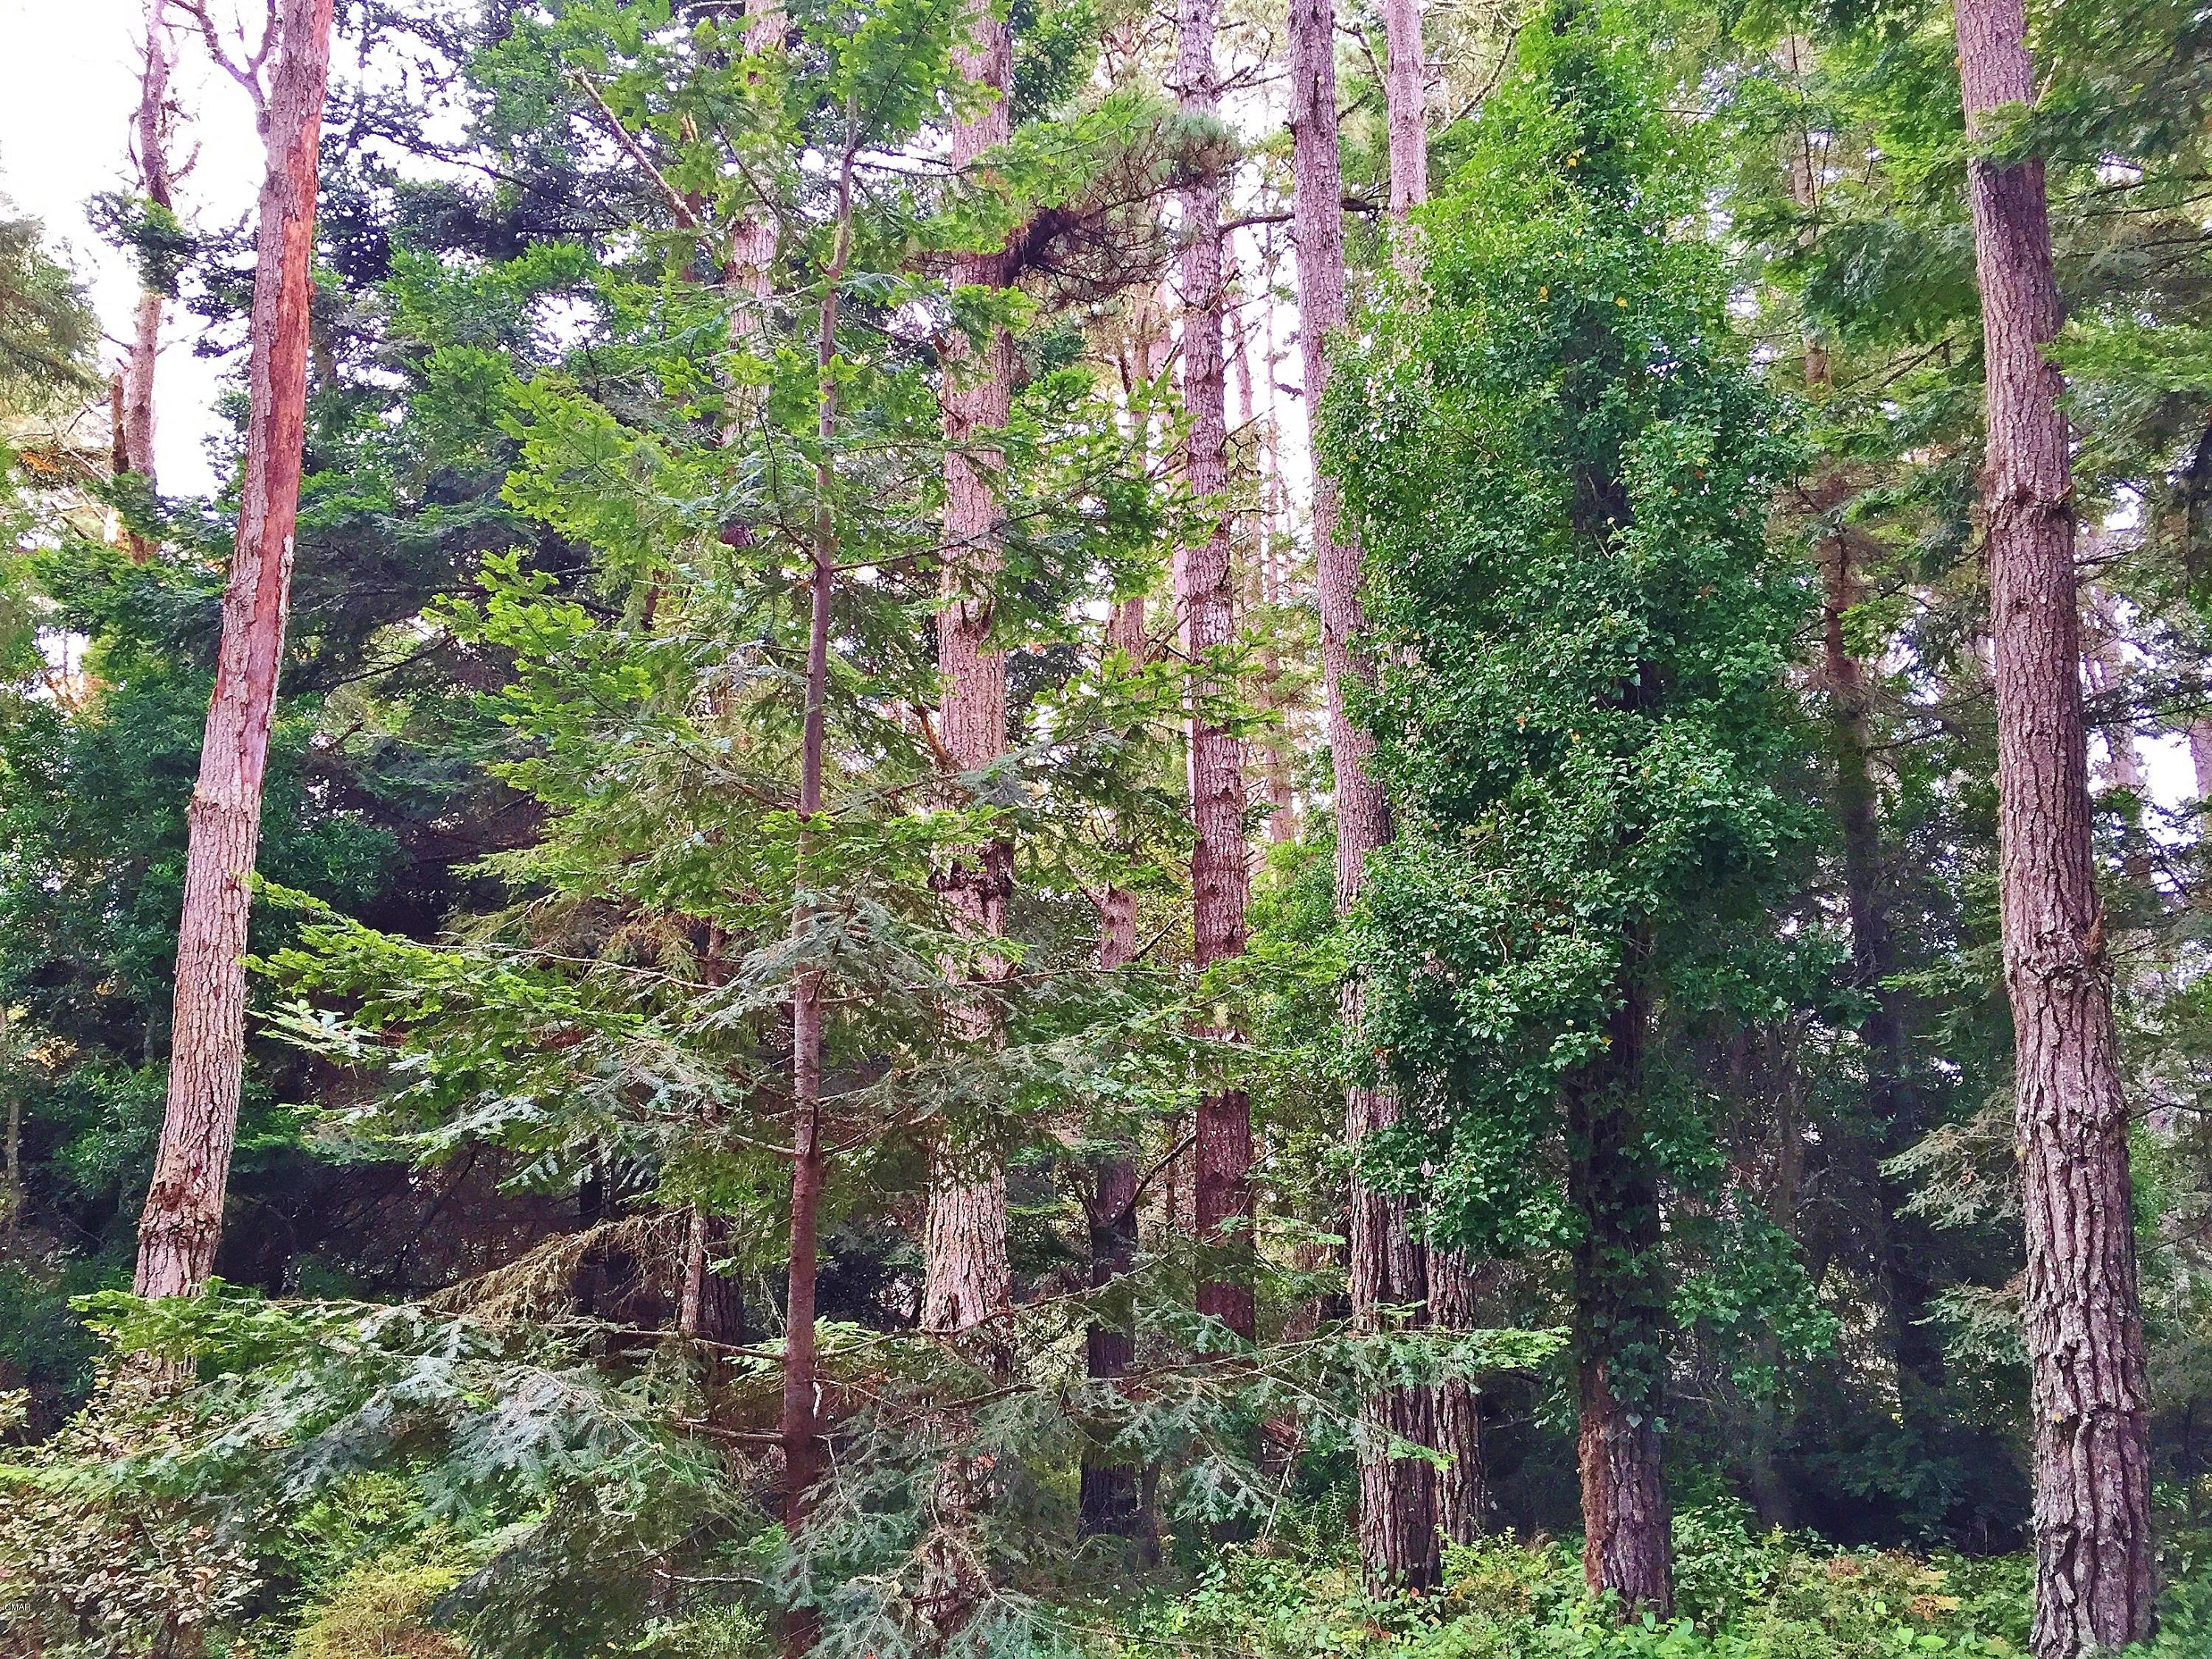 Build your custom home on this pretty parcel on the golf course in Little River. There are some very nice trees and a little fern lined creek. Situated down a private lane. Excellent location close to shopping, restaurants and beautiful beaches. Minutes from Mendocino Village.